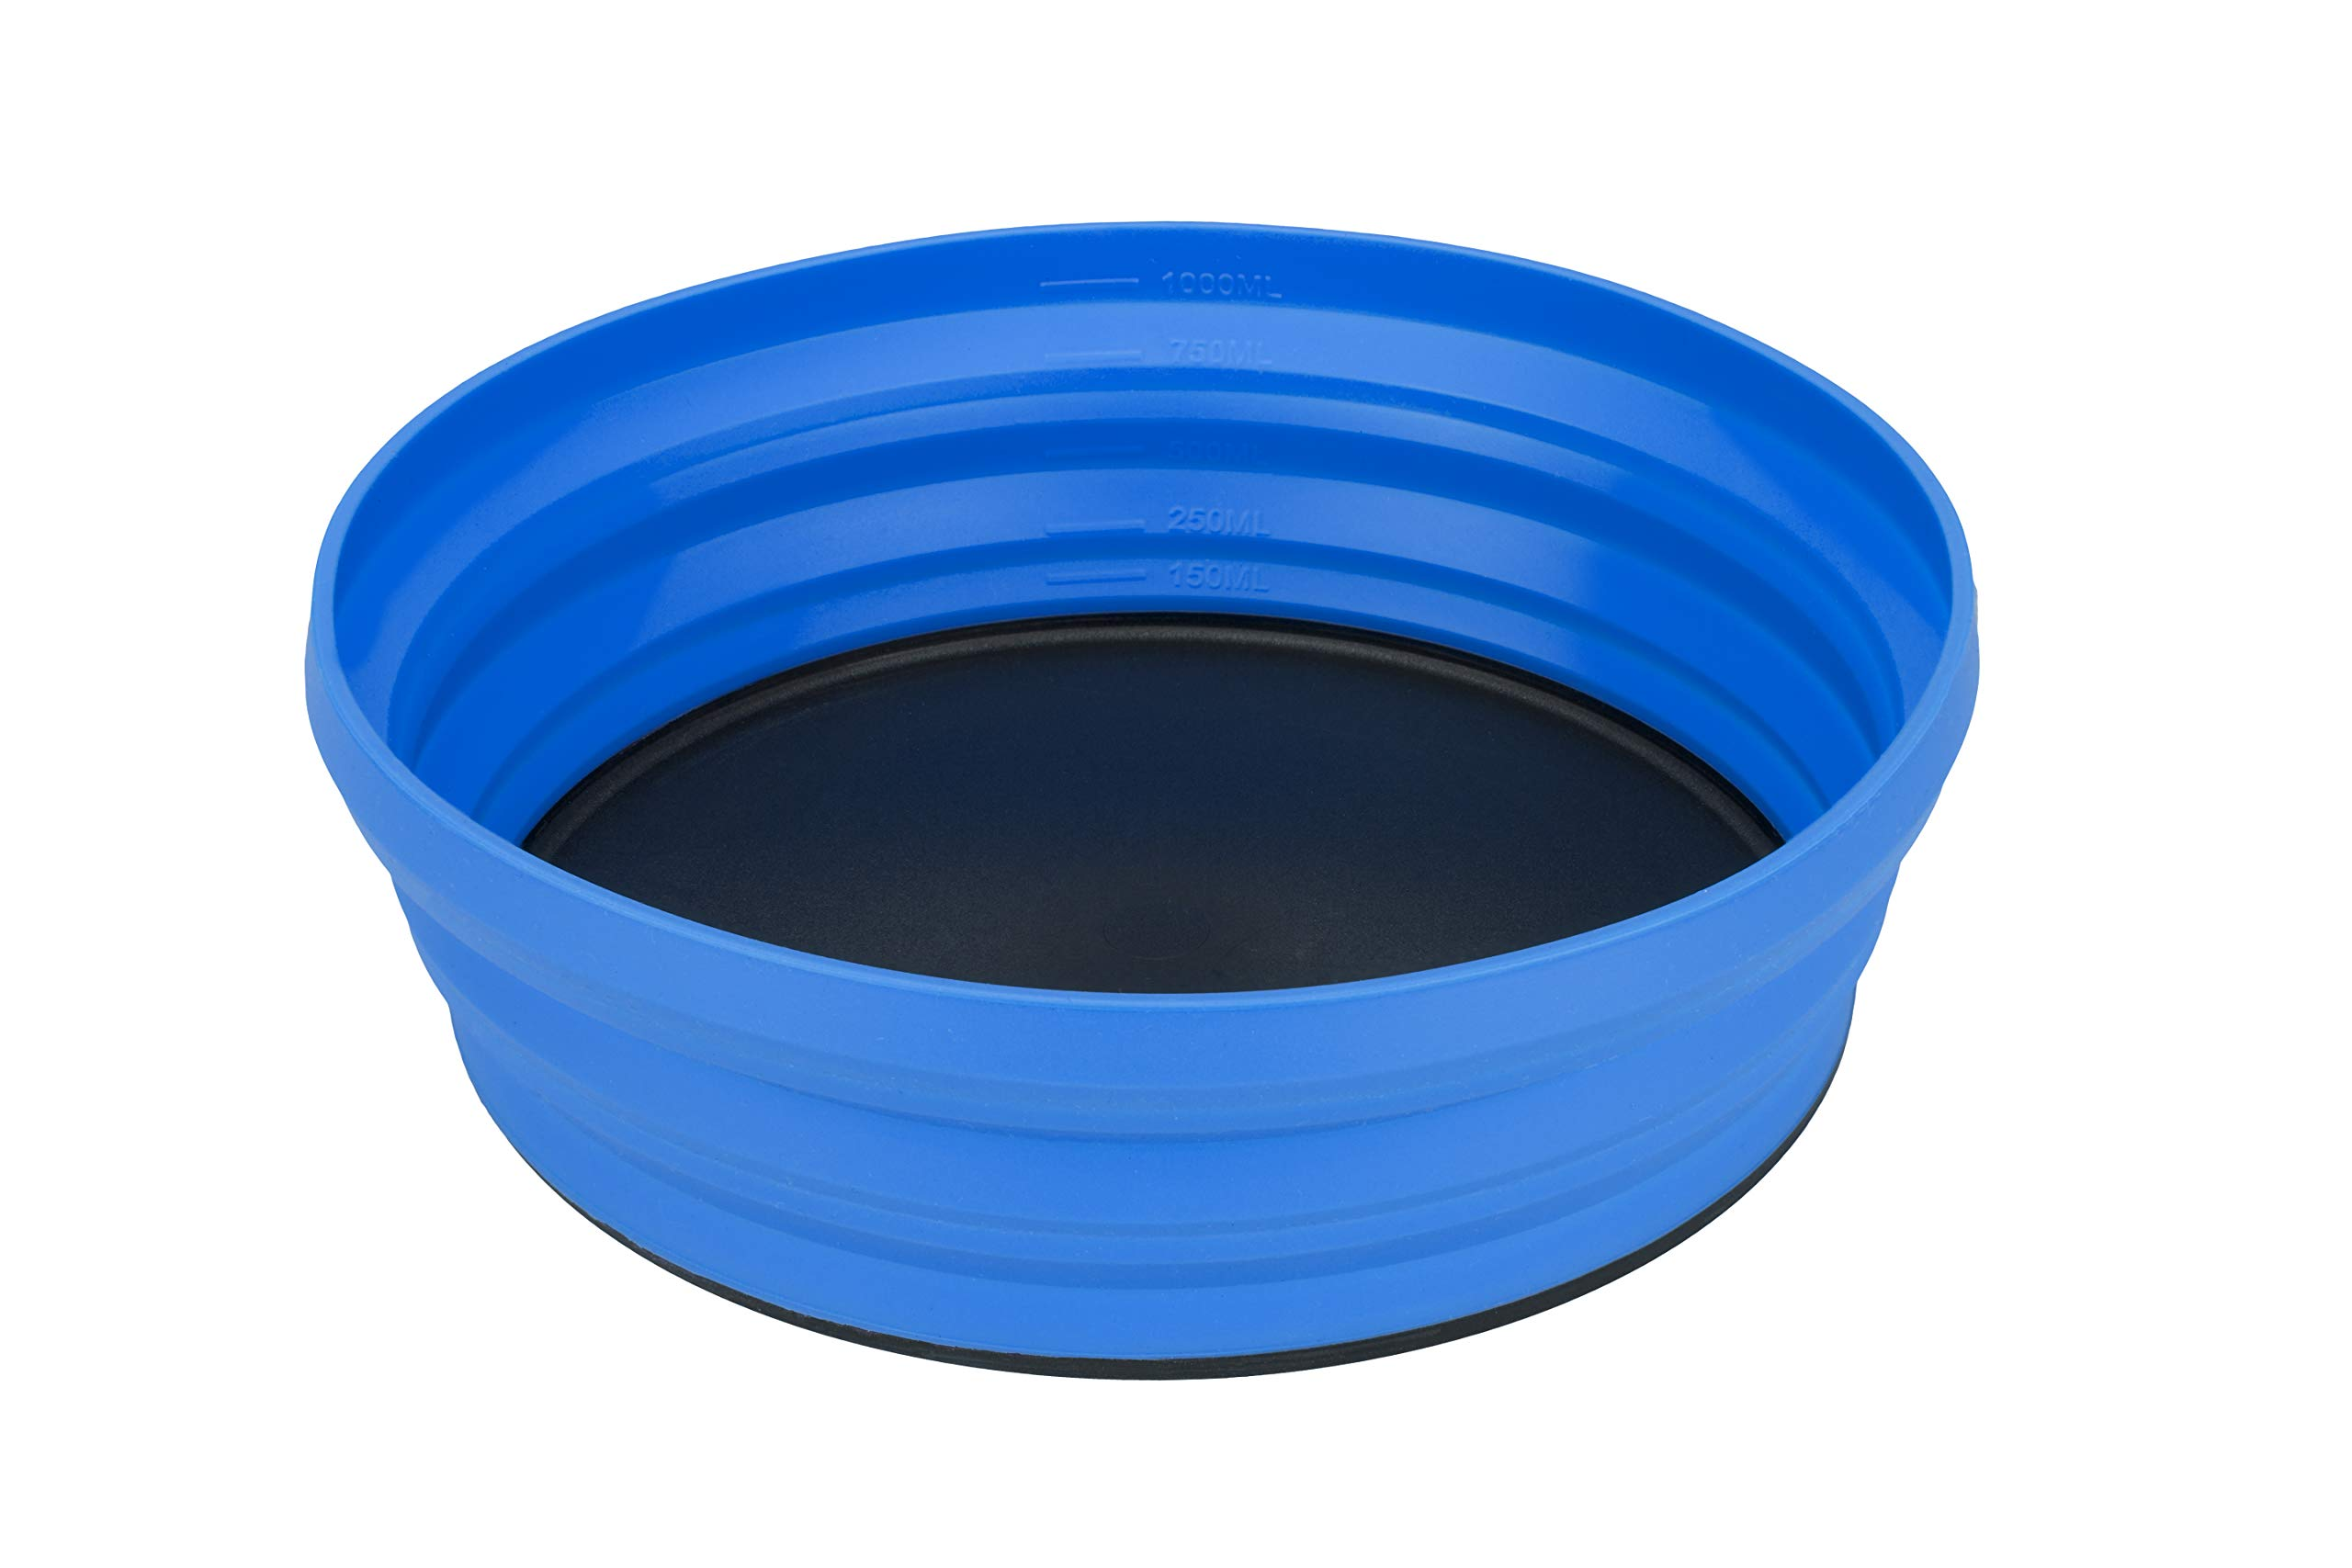 Sea to Summit XL Bowl, Royal Blue by Sea to Summit